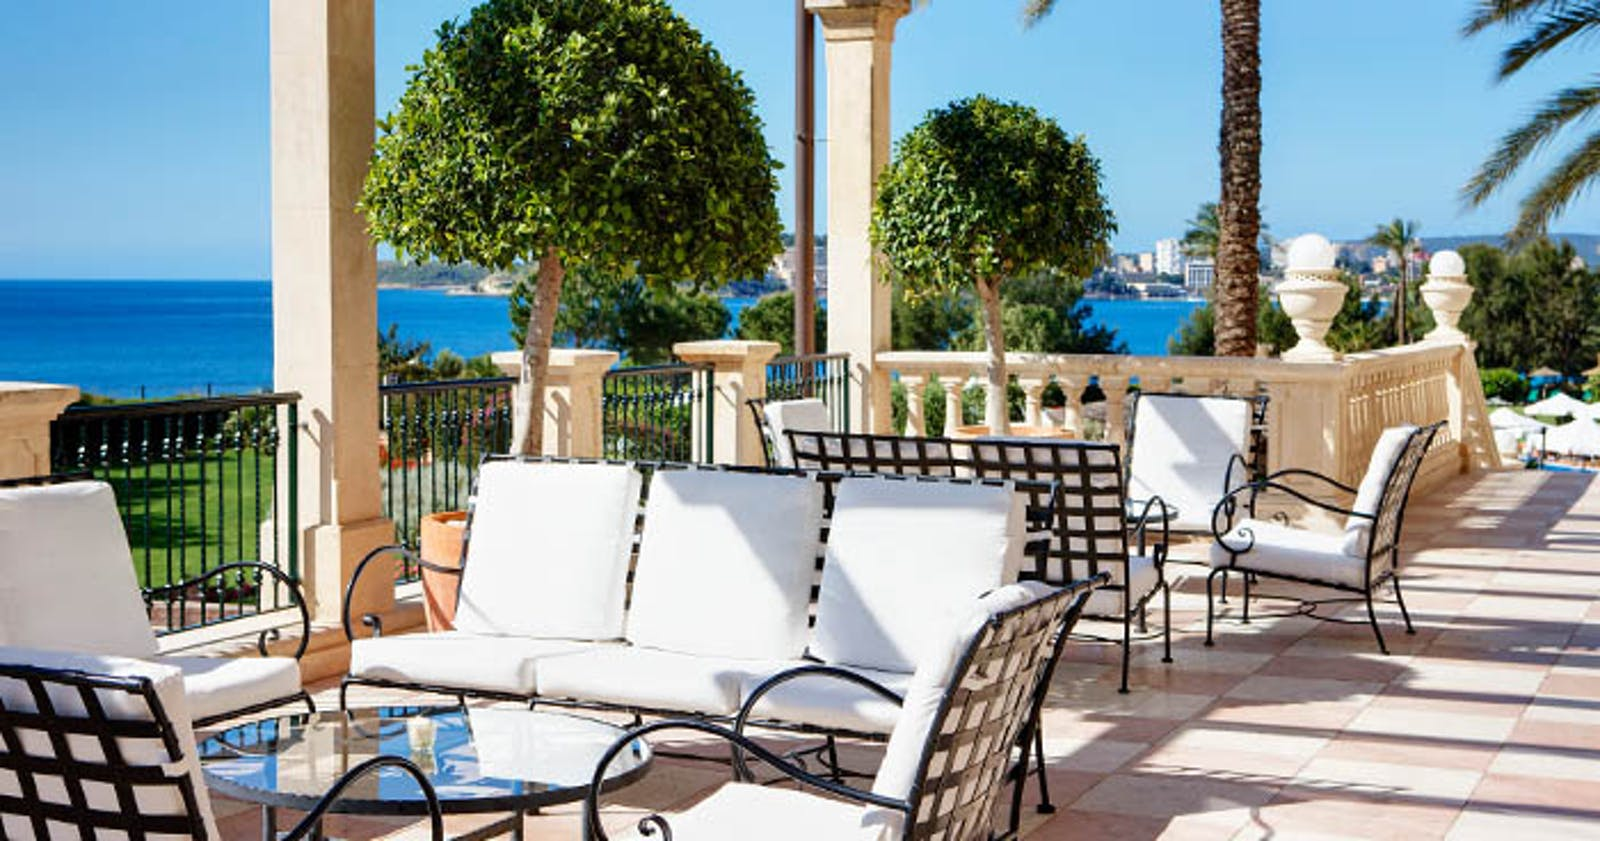 Dining Terrace at The St Regis Mardavall Mallorca Resort, Spain